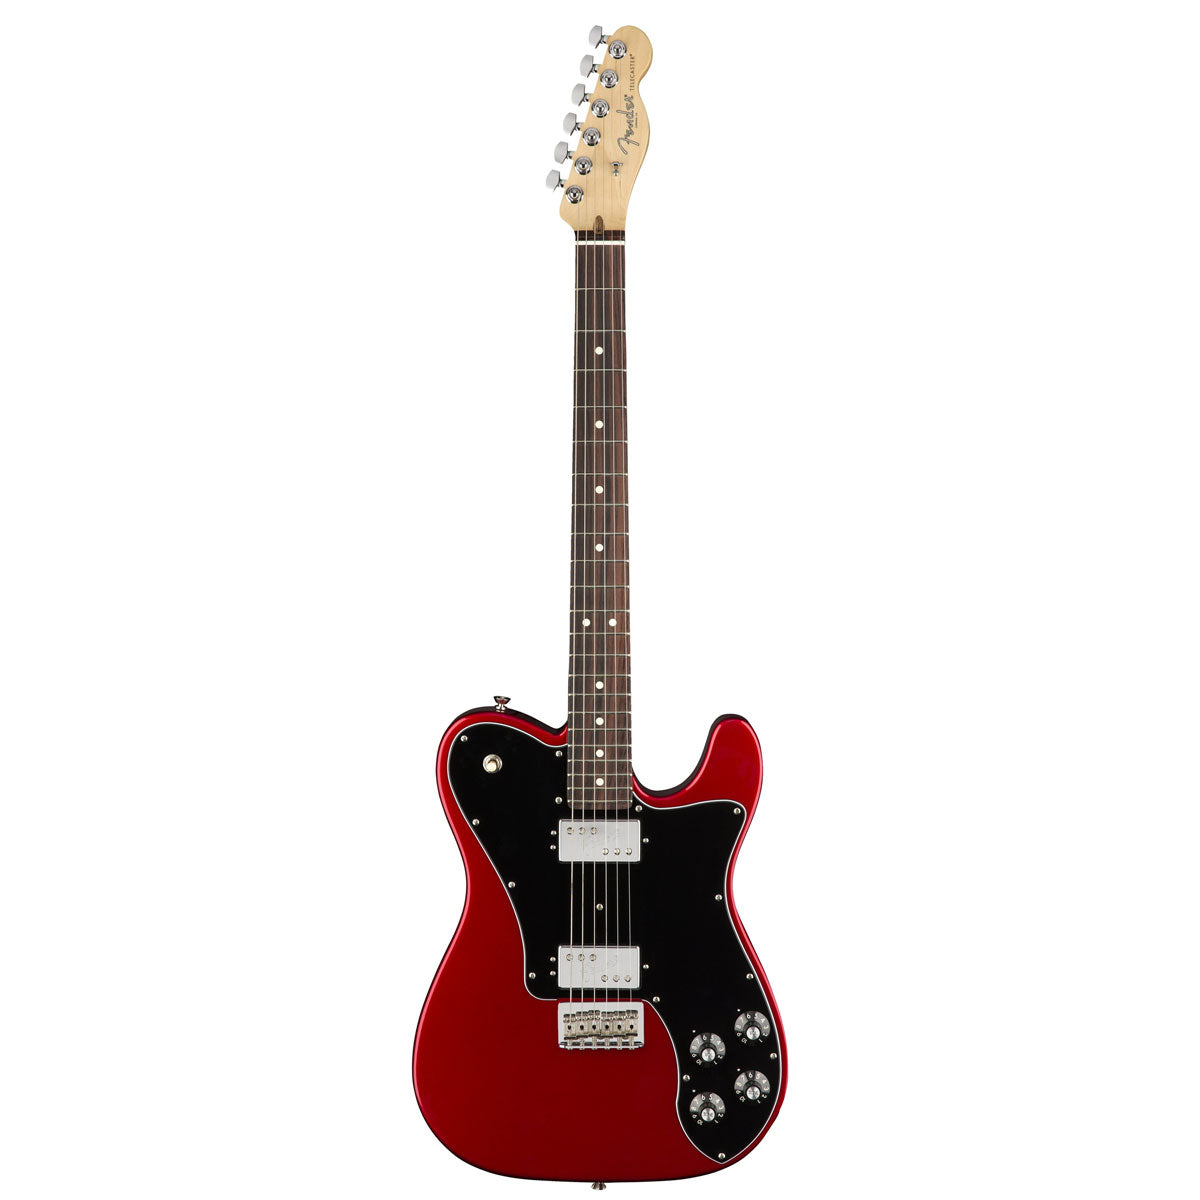 Fender American Pro Telecaster Deluxe ShawBucker, Rosewood Fingerboard - Candy Apple Red | Lucky Fret Music Co.